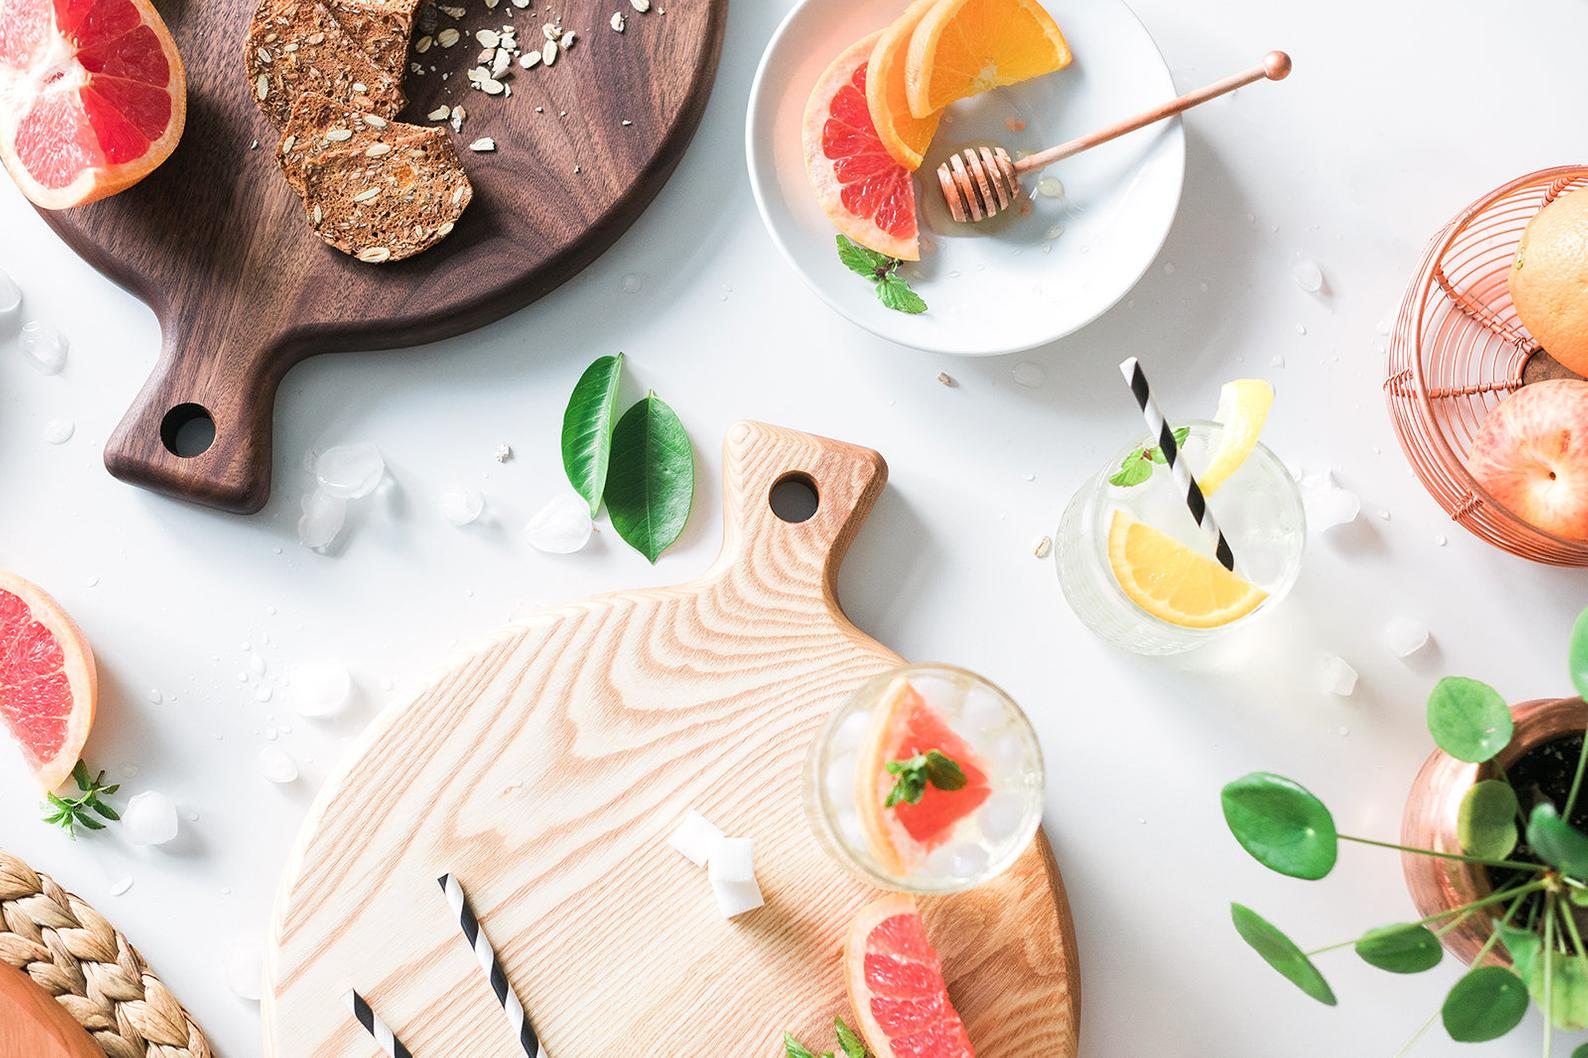 Classic Round Wood Cutting Board By Hook and Stem Co